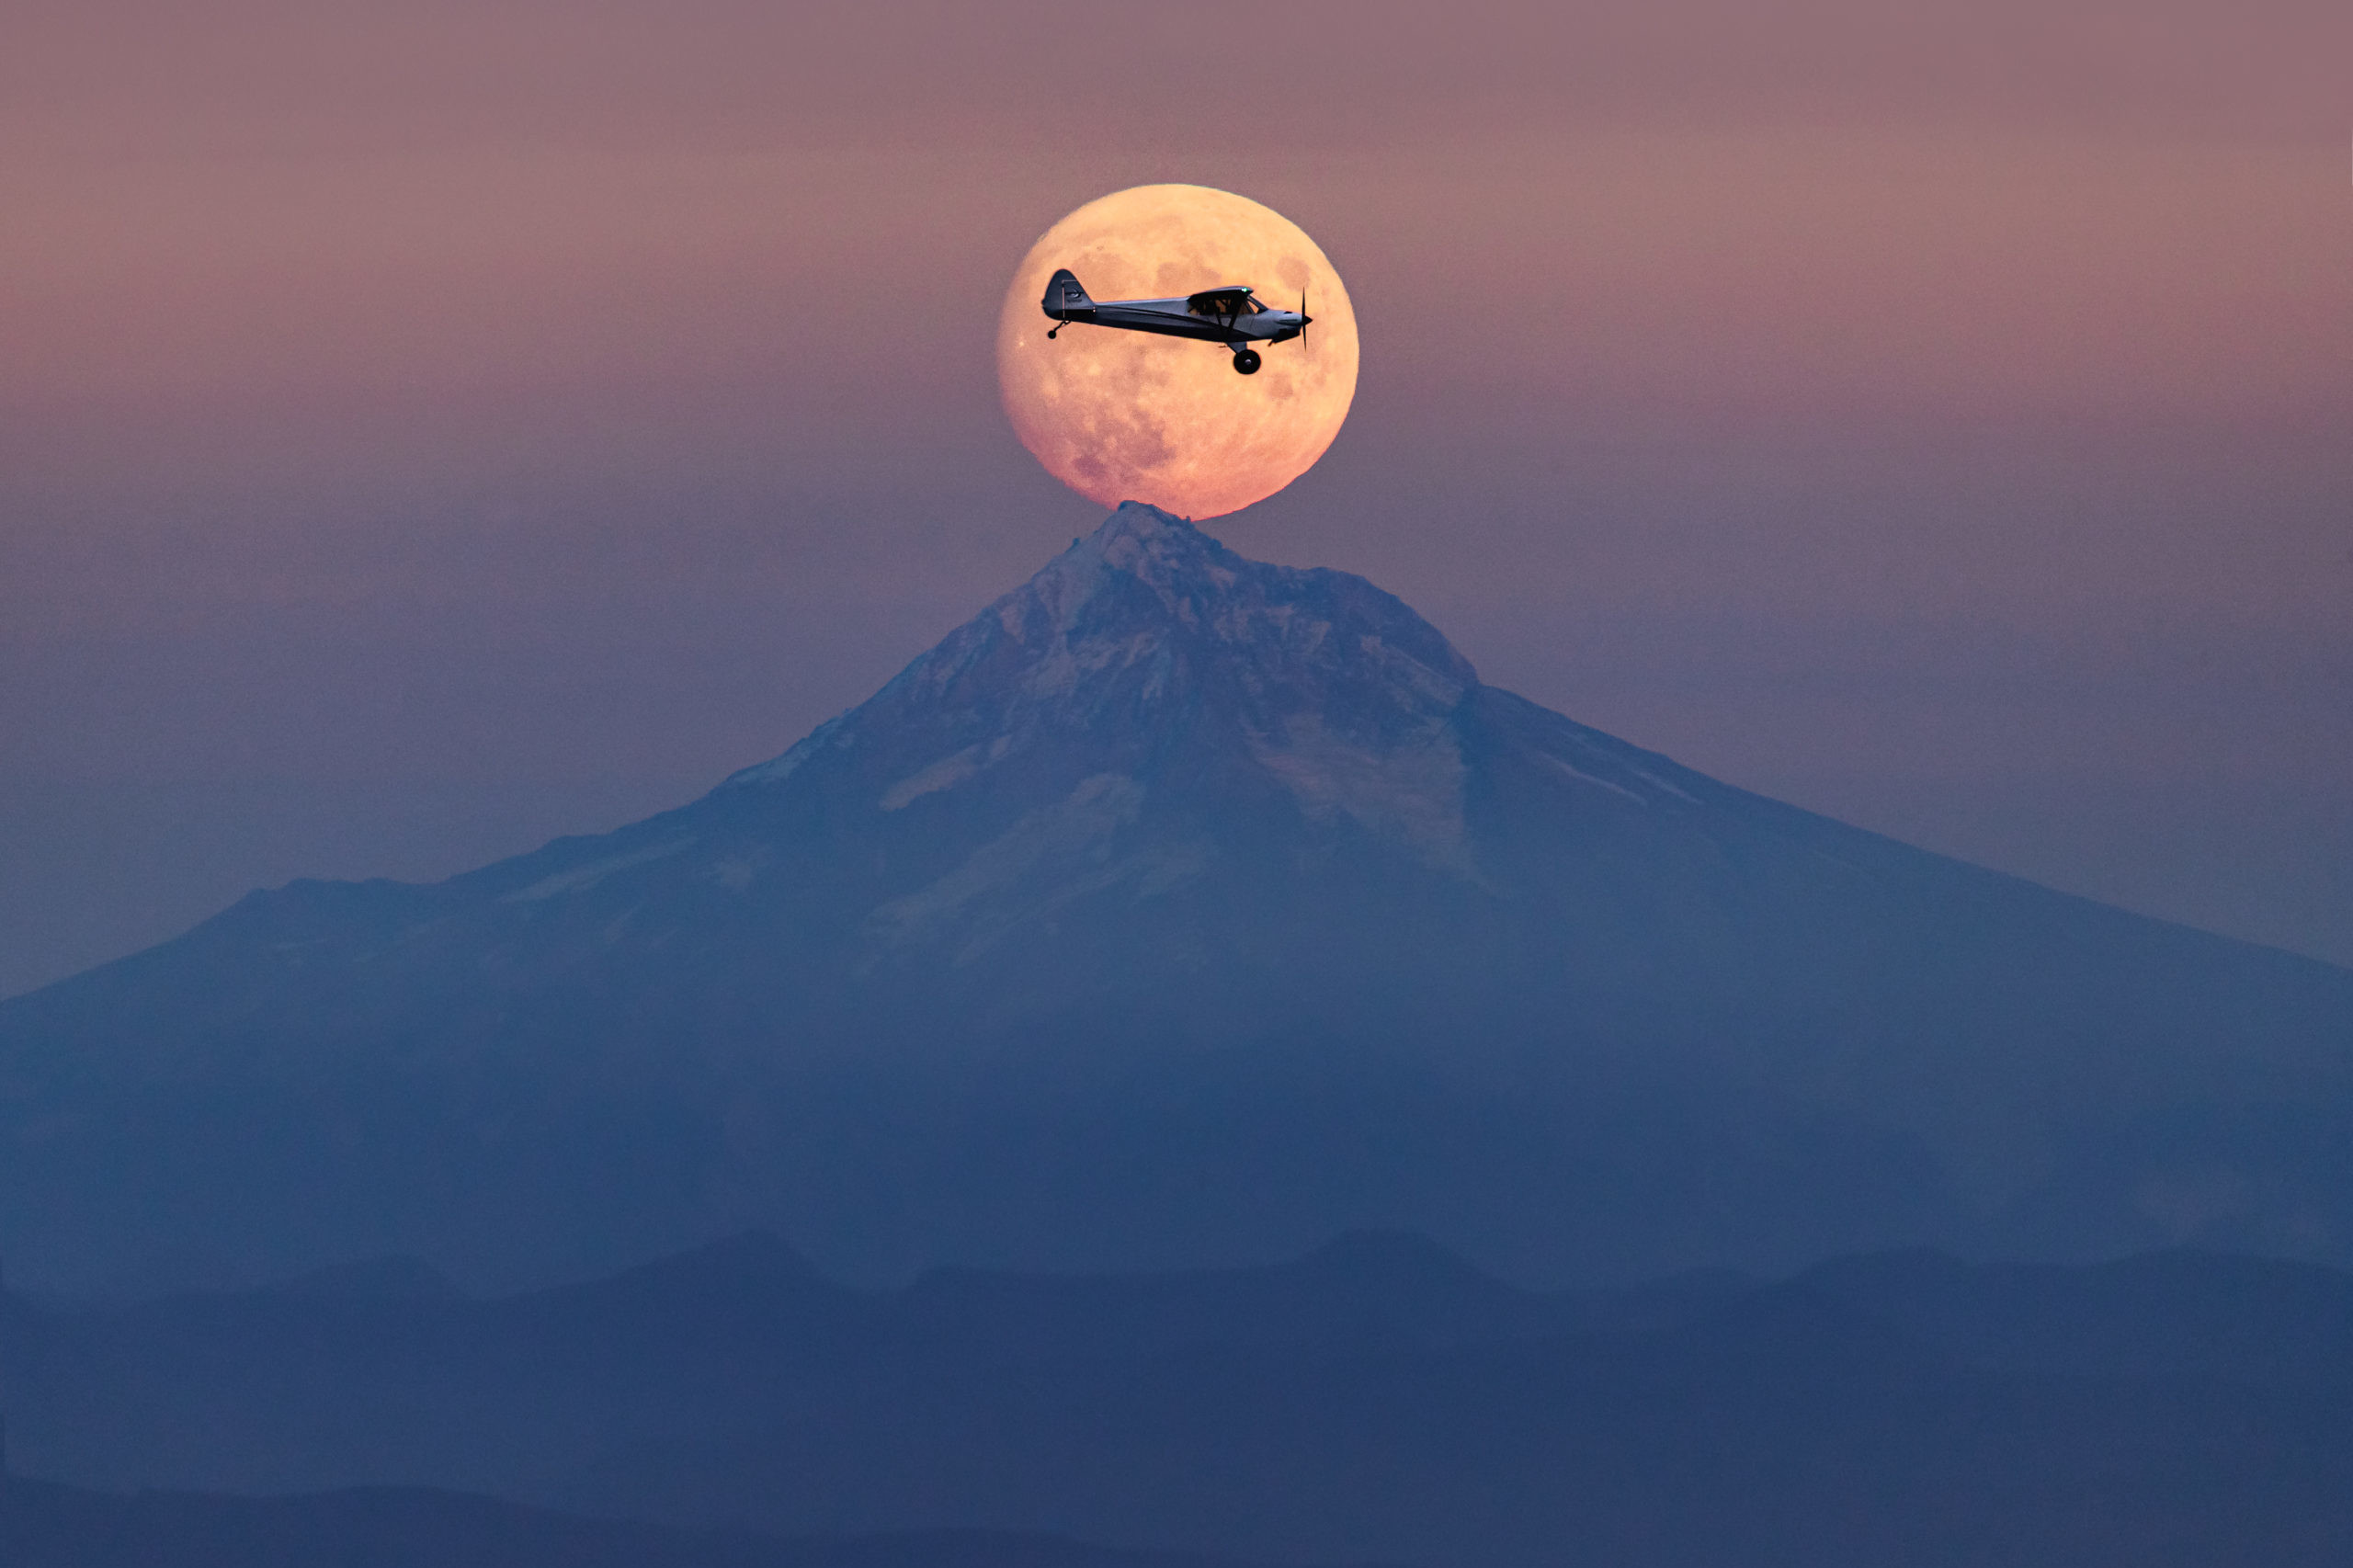 Aviation photography of a Carbon Cub airplane inside the rising full moon at sunset over Mount Hood, Oregon